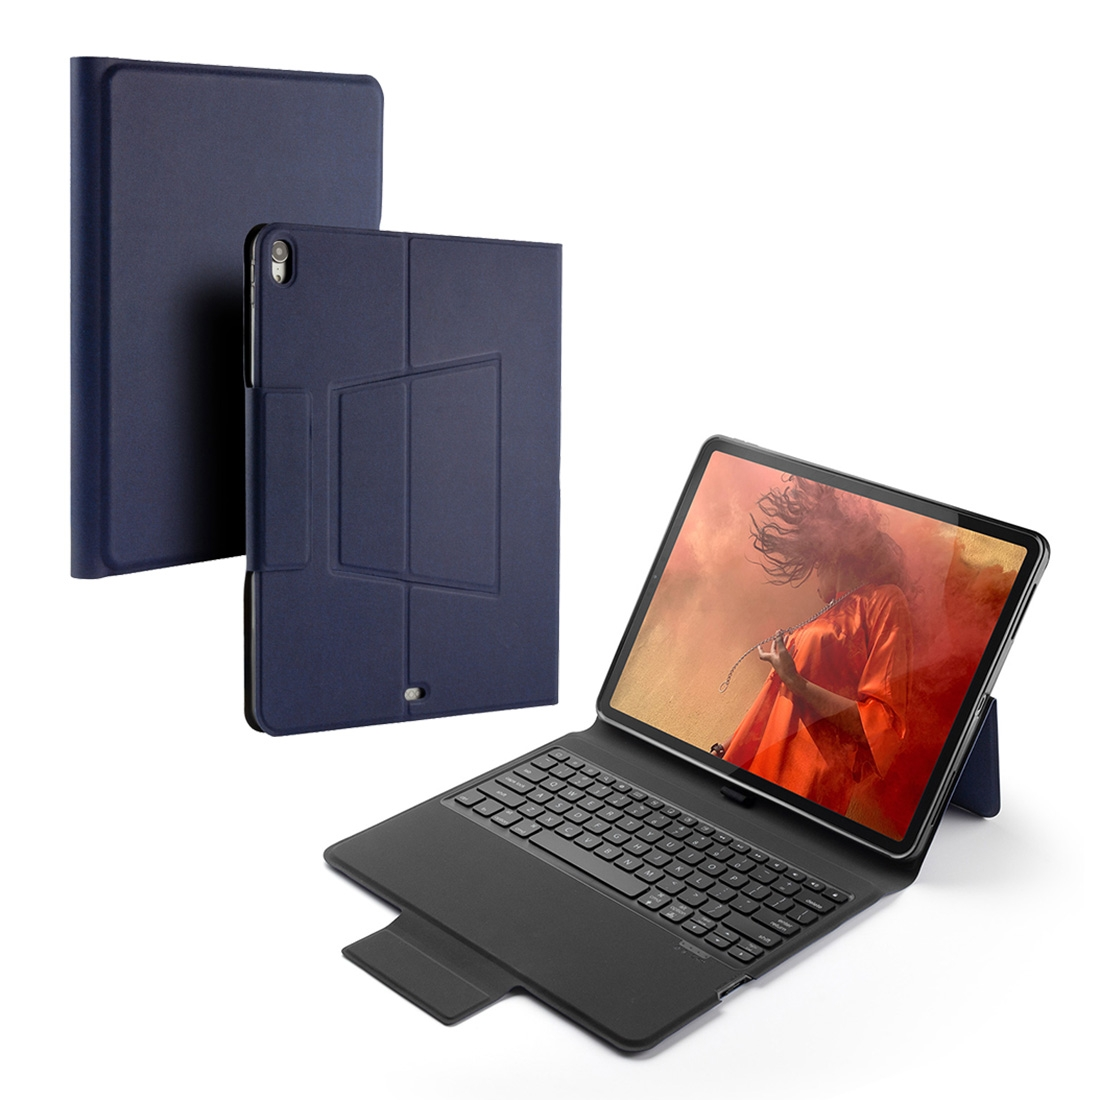 iPad Pro 12.9 Case With Keyboard & Backlite With Leather Flip Case for iPad Pro 12.9 (2018) (Blue)